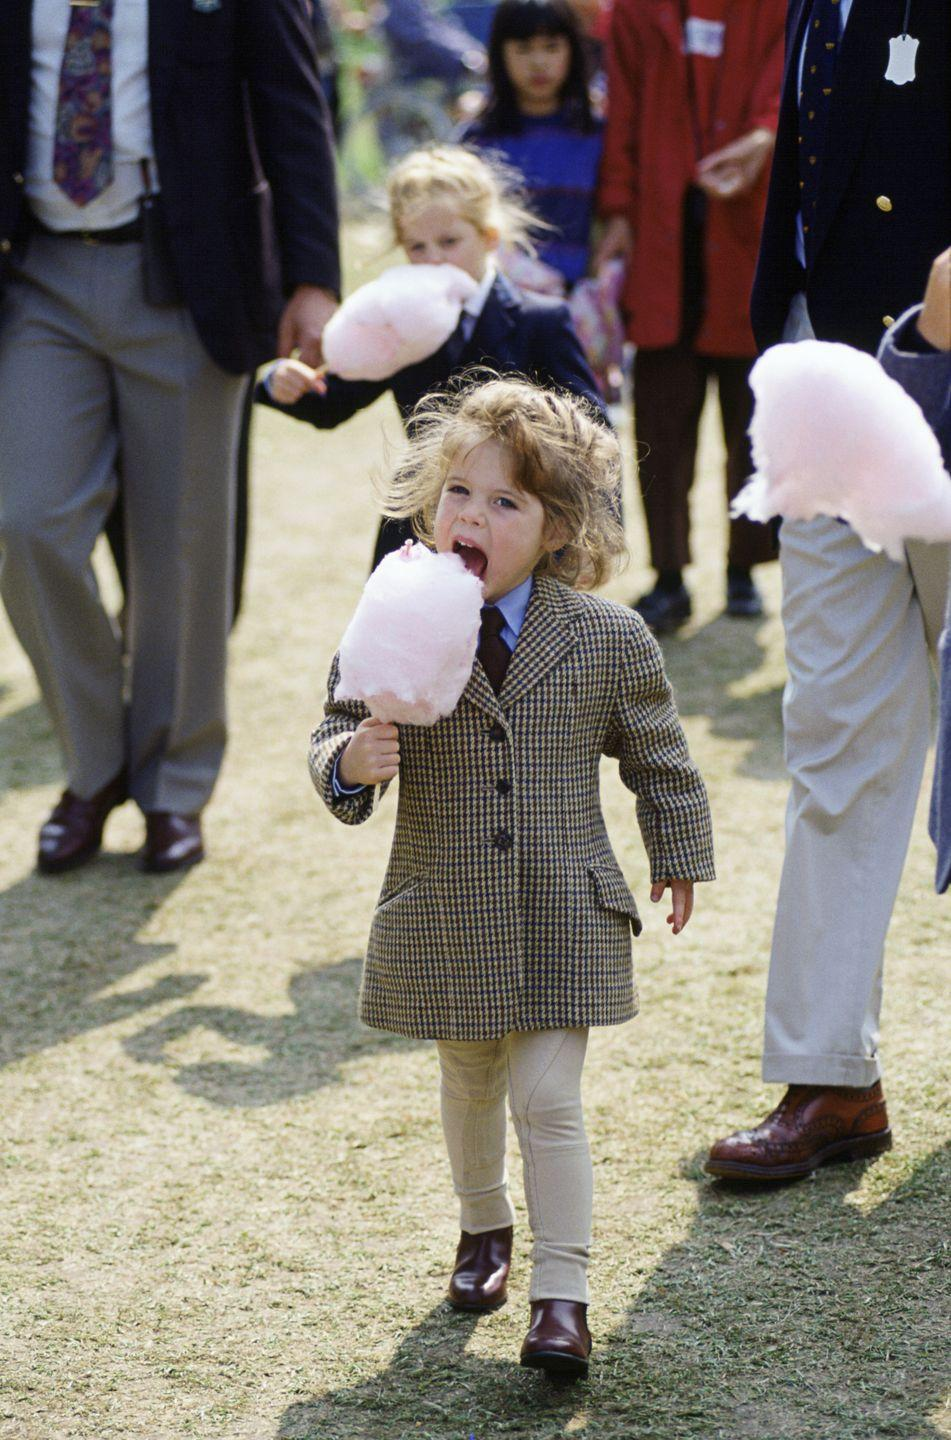 <p>Could Eugenie be any cuter? Here she is eating candyfloss (or cotton candy).</p>